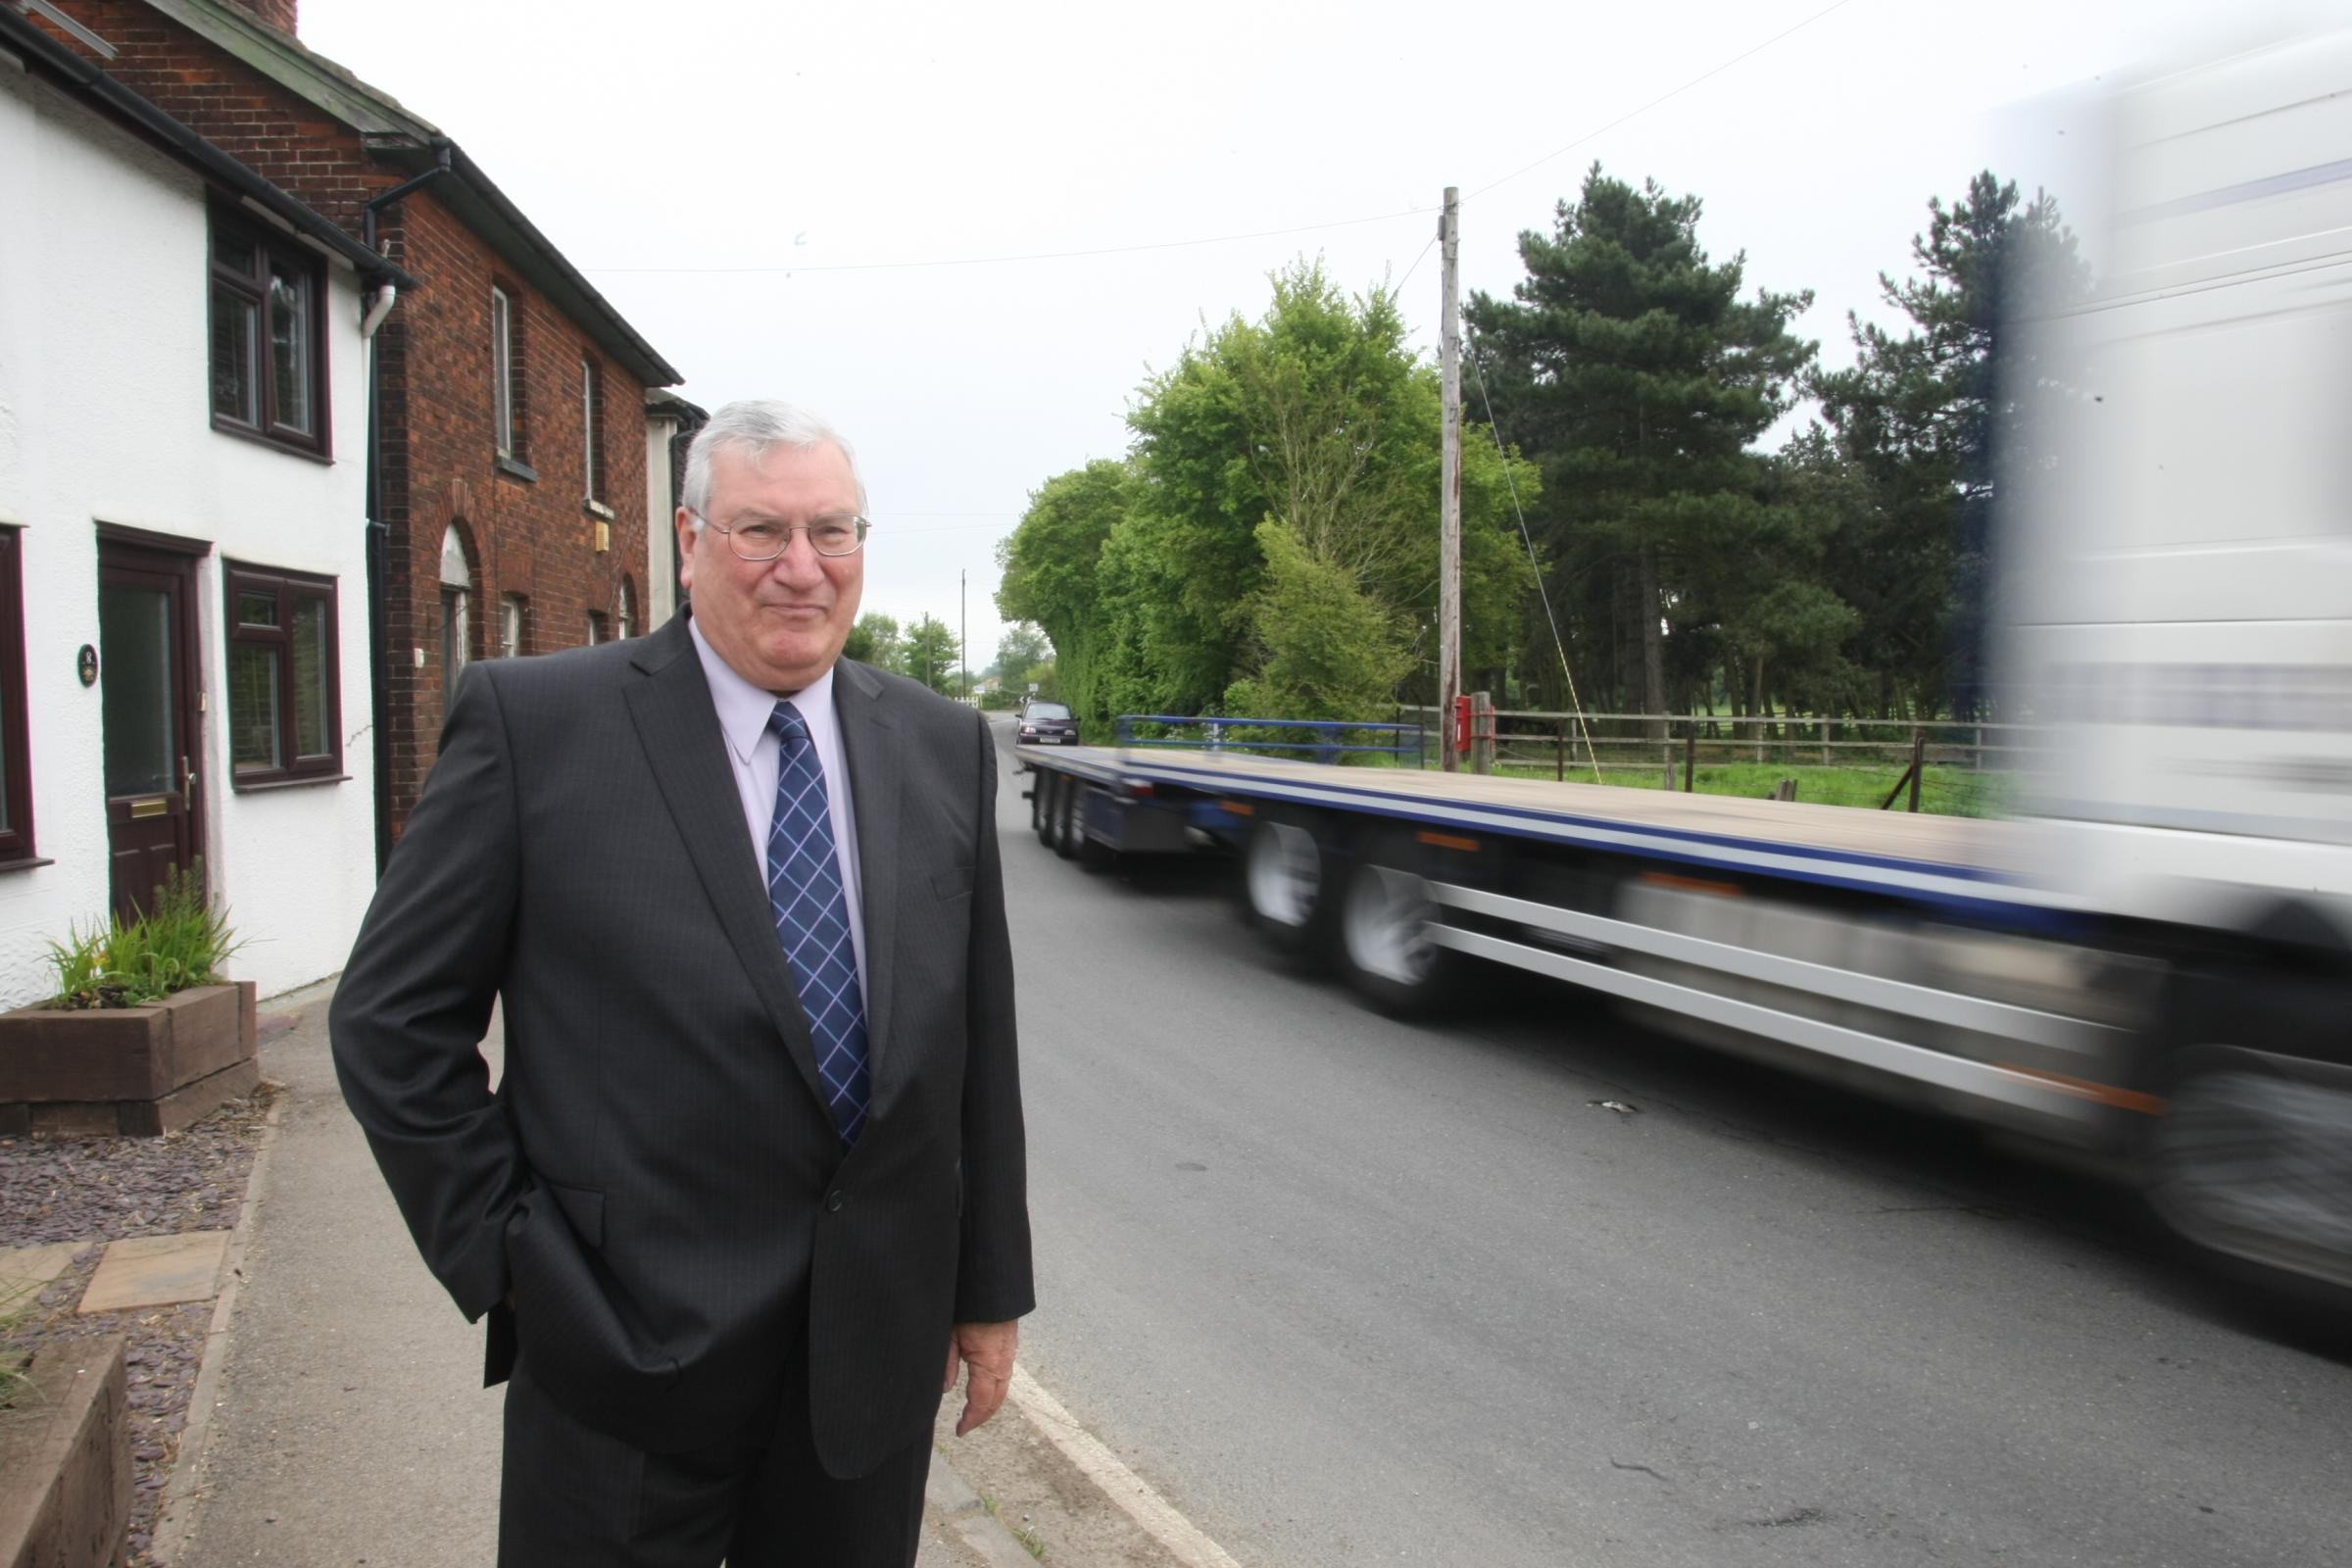 Asheldham and Dengie Parish Council chairman Bryan Ledger in Southminster Road